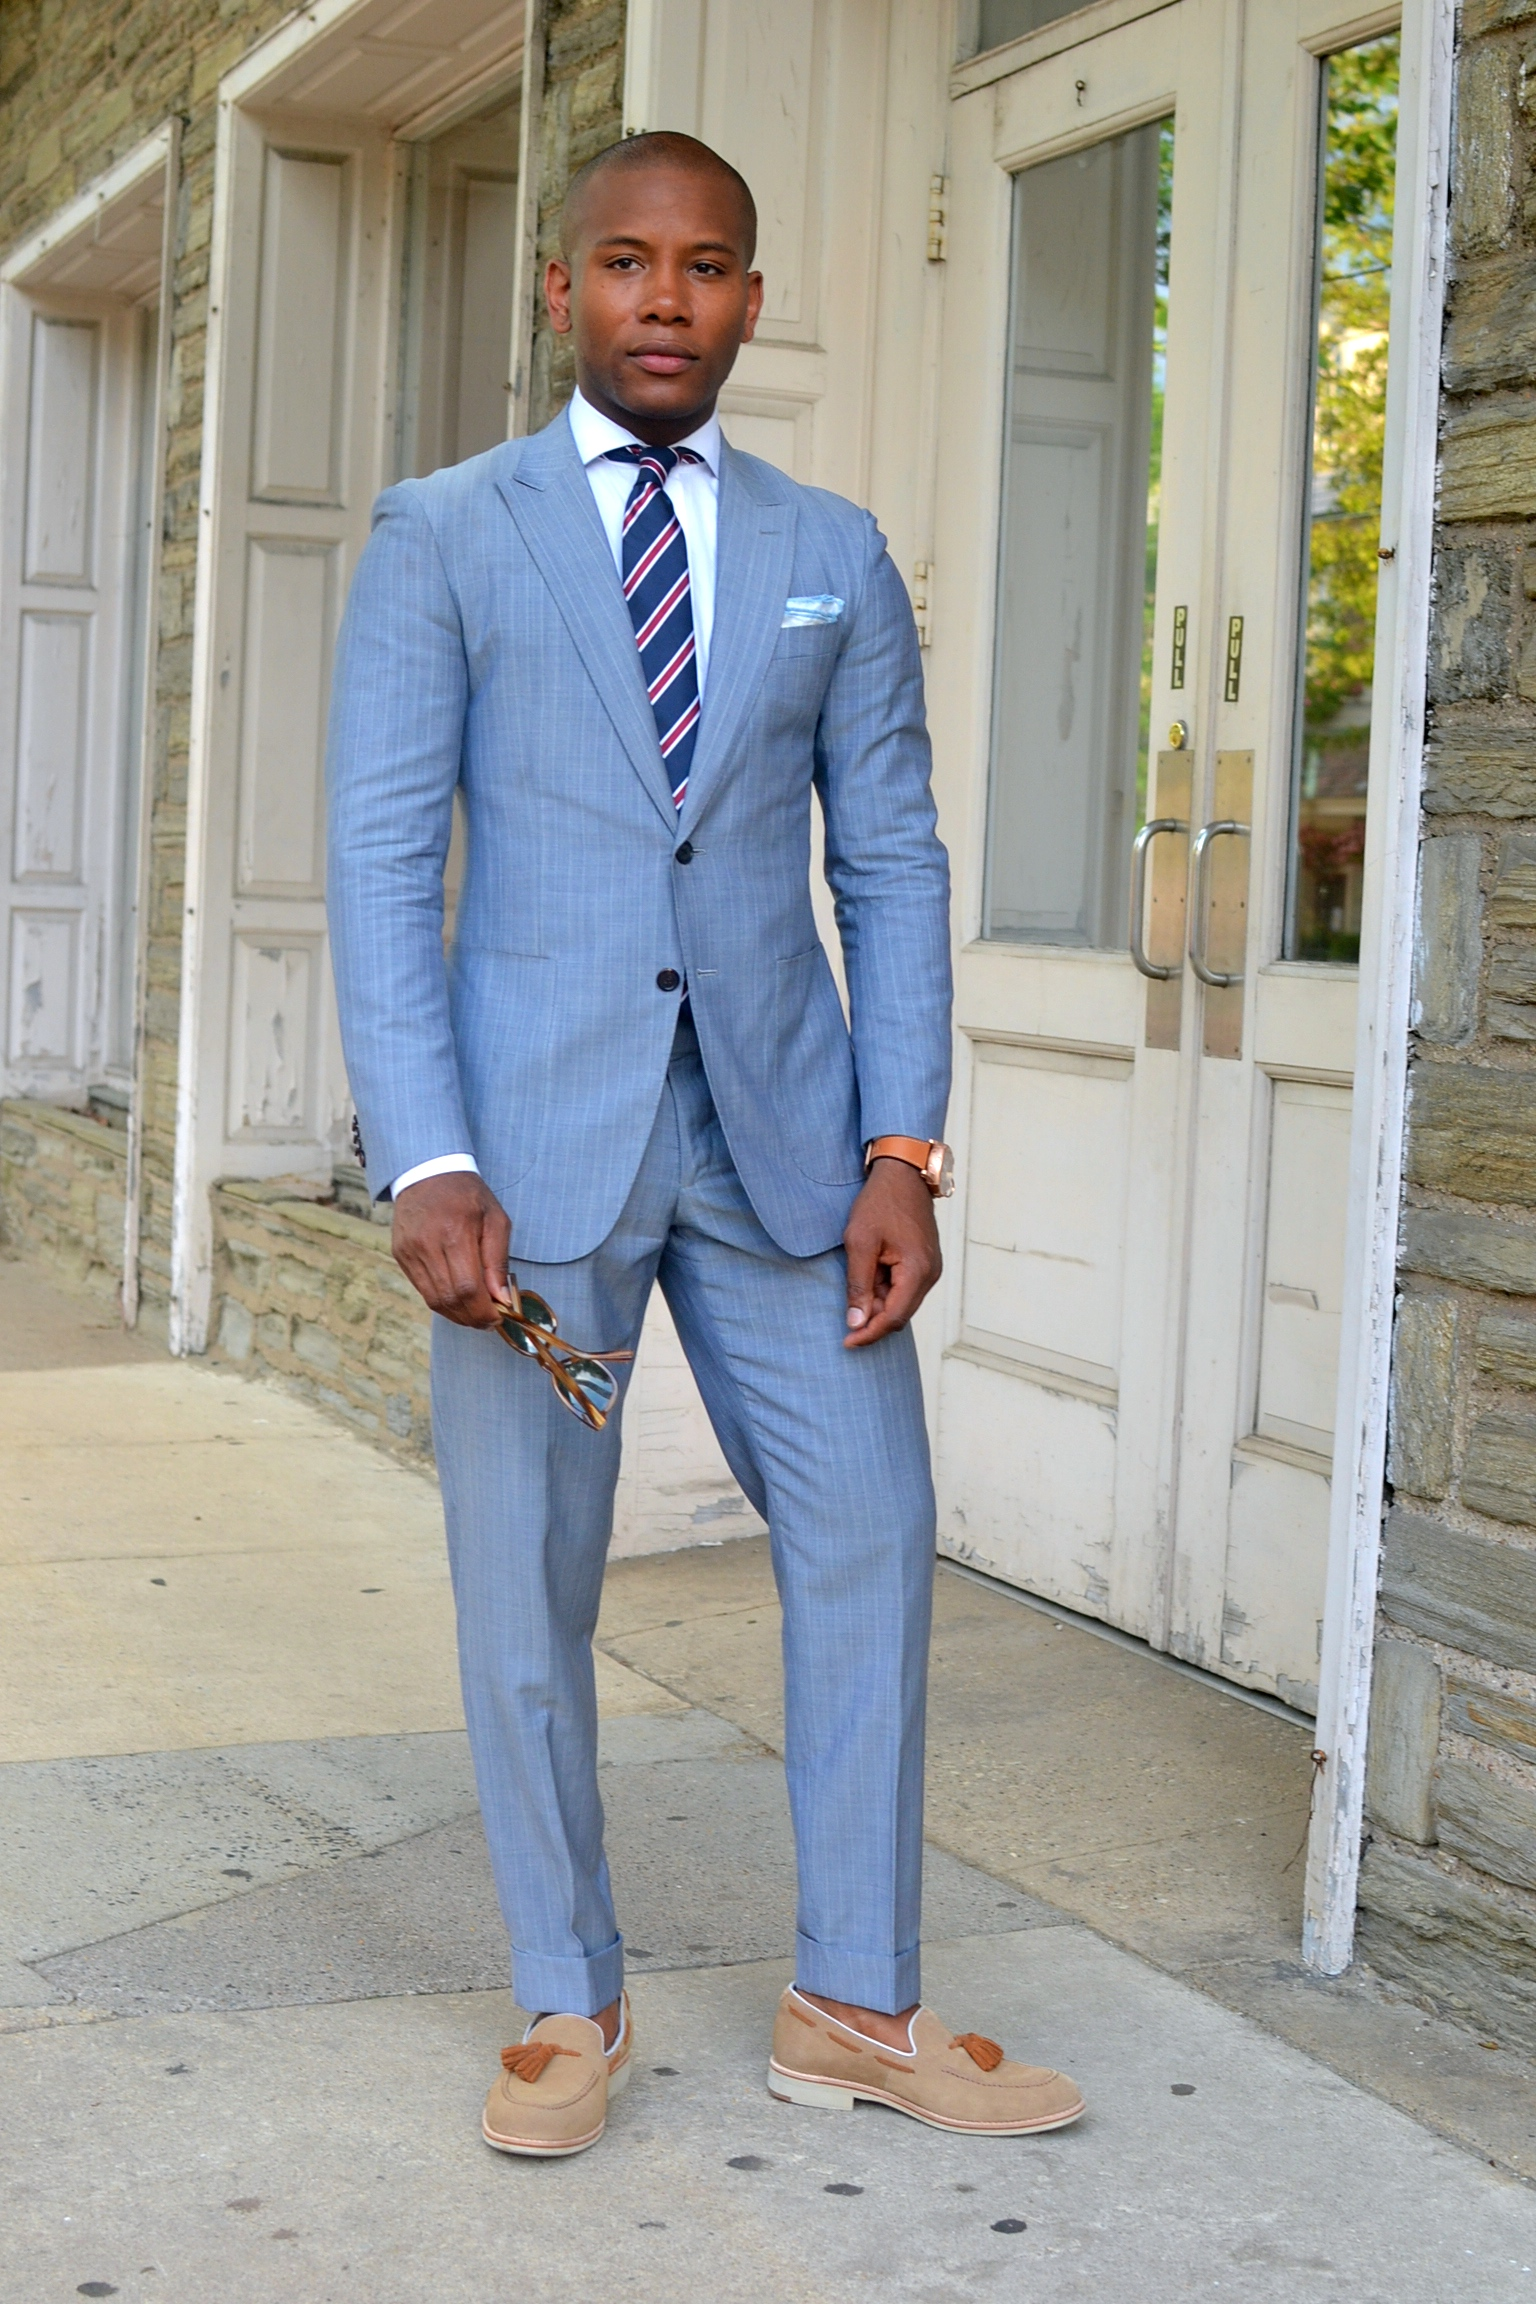 Sabir Peele In Black Lapel Suit & Johnston & Murphy Tan Ellington Moc toe Loafers